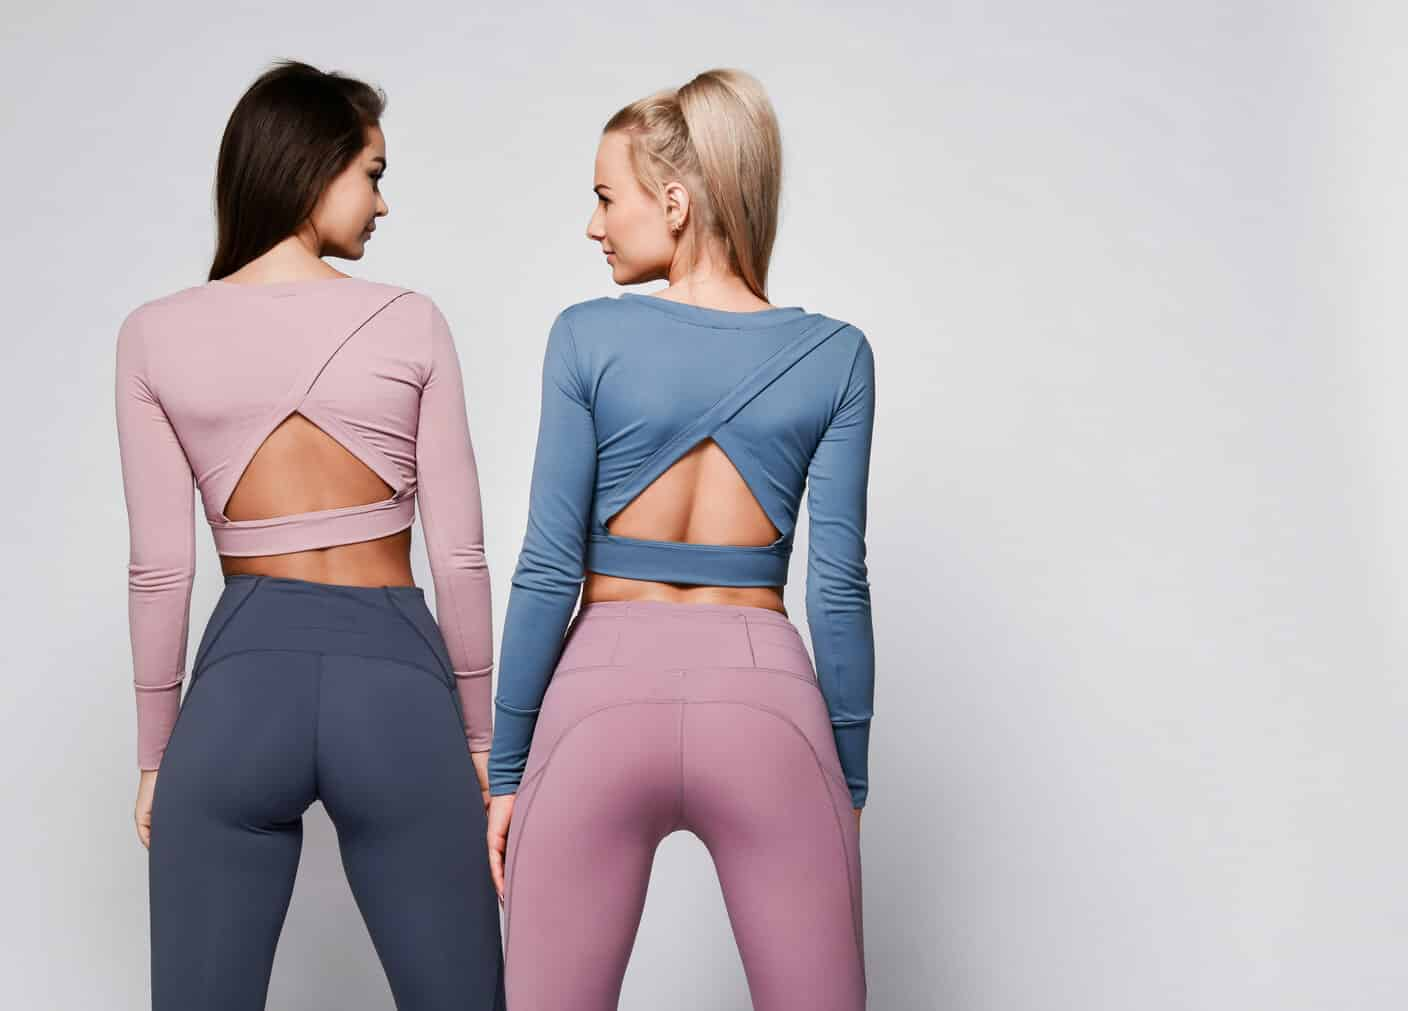 What to look for gym clothes